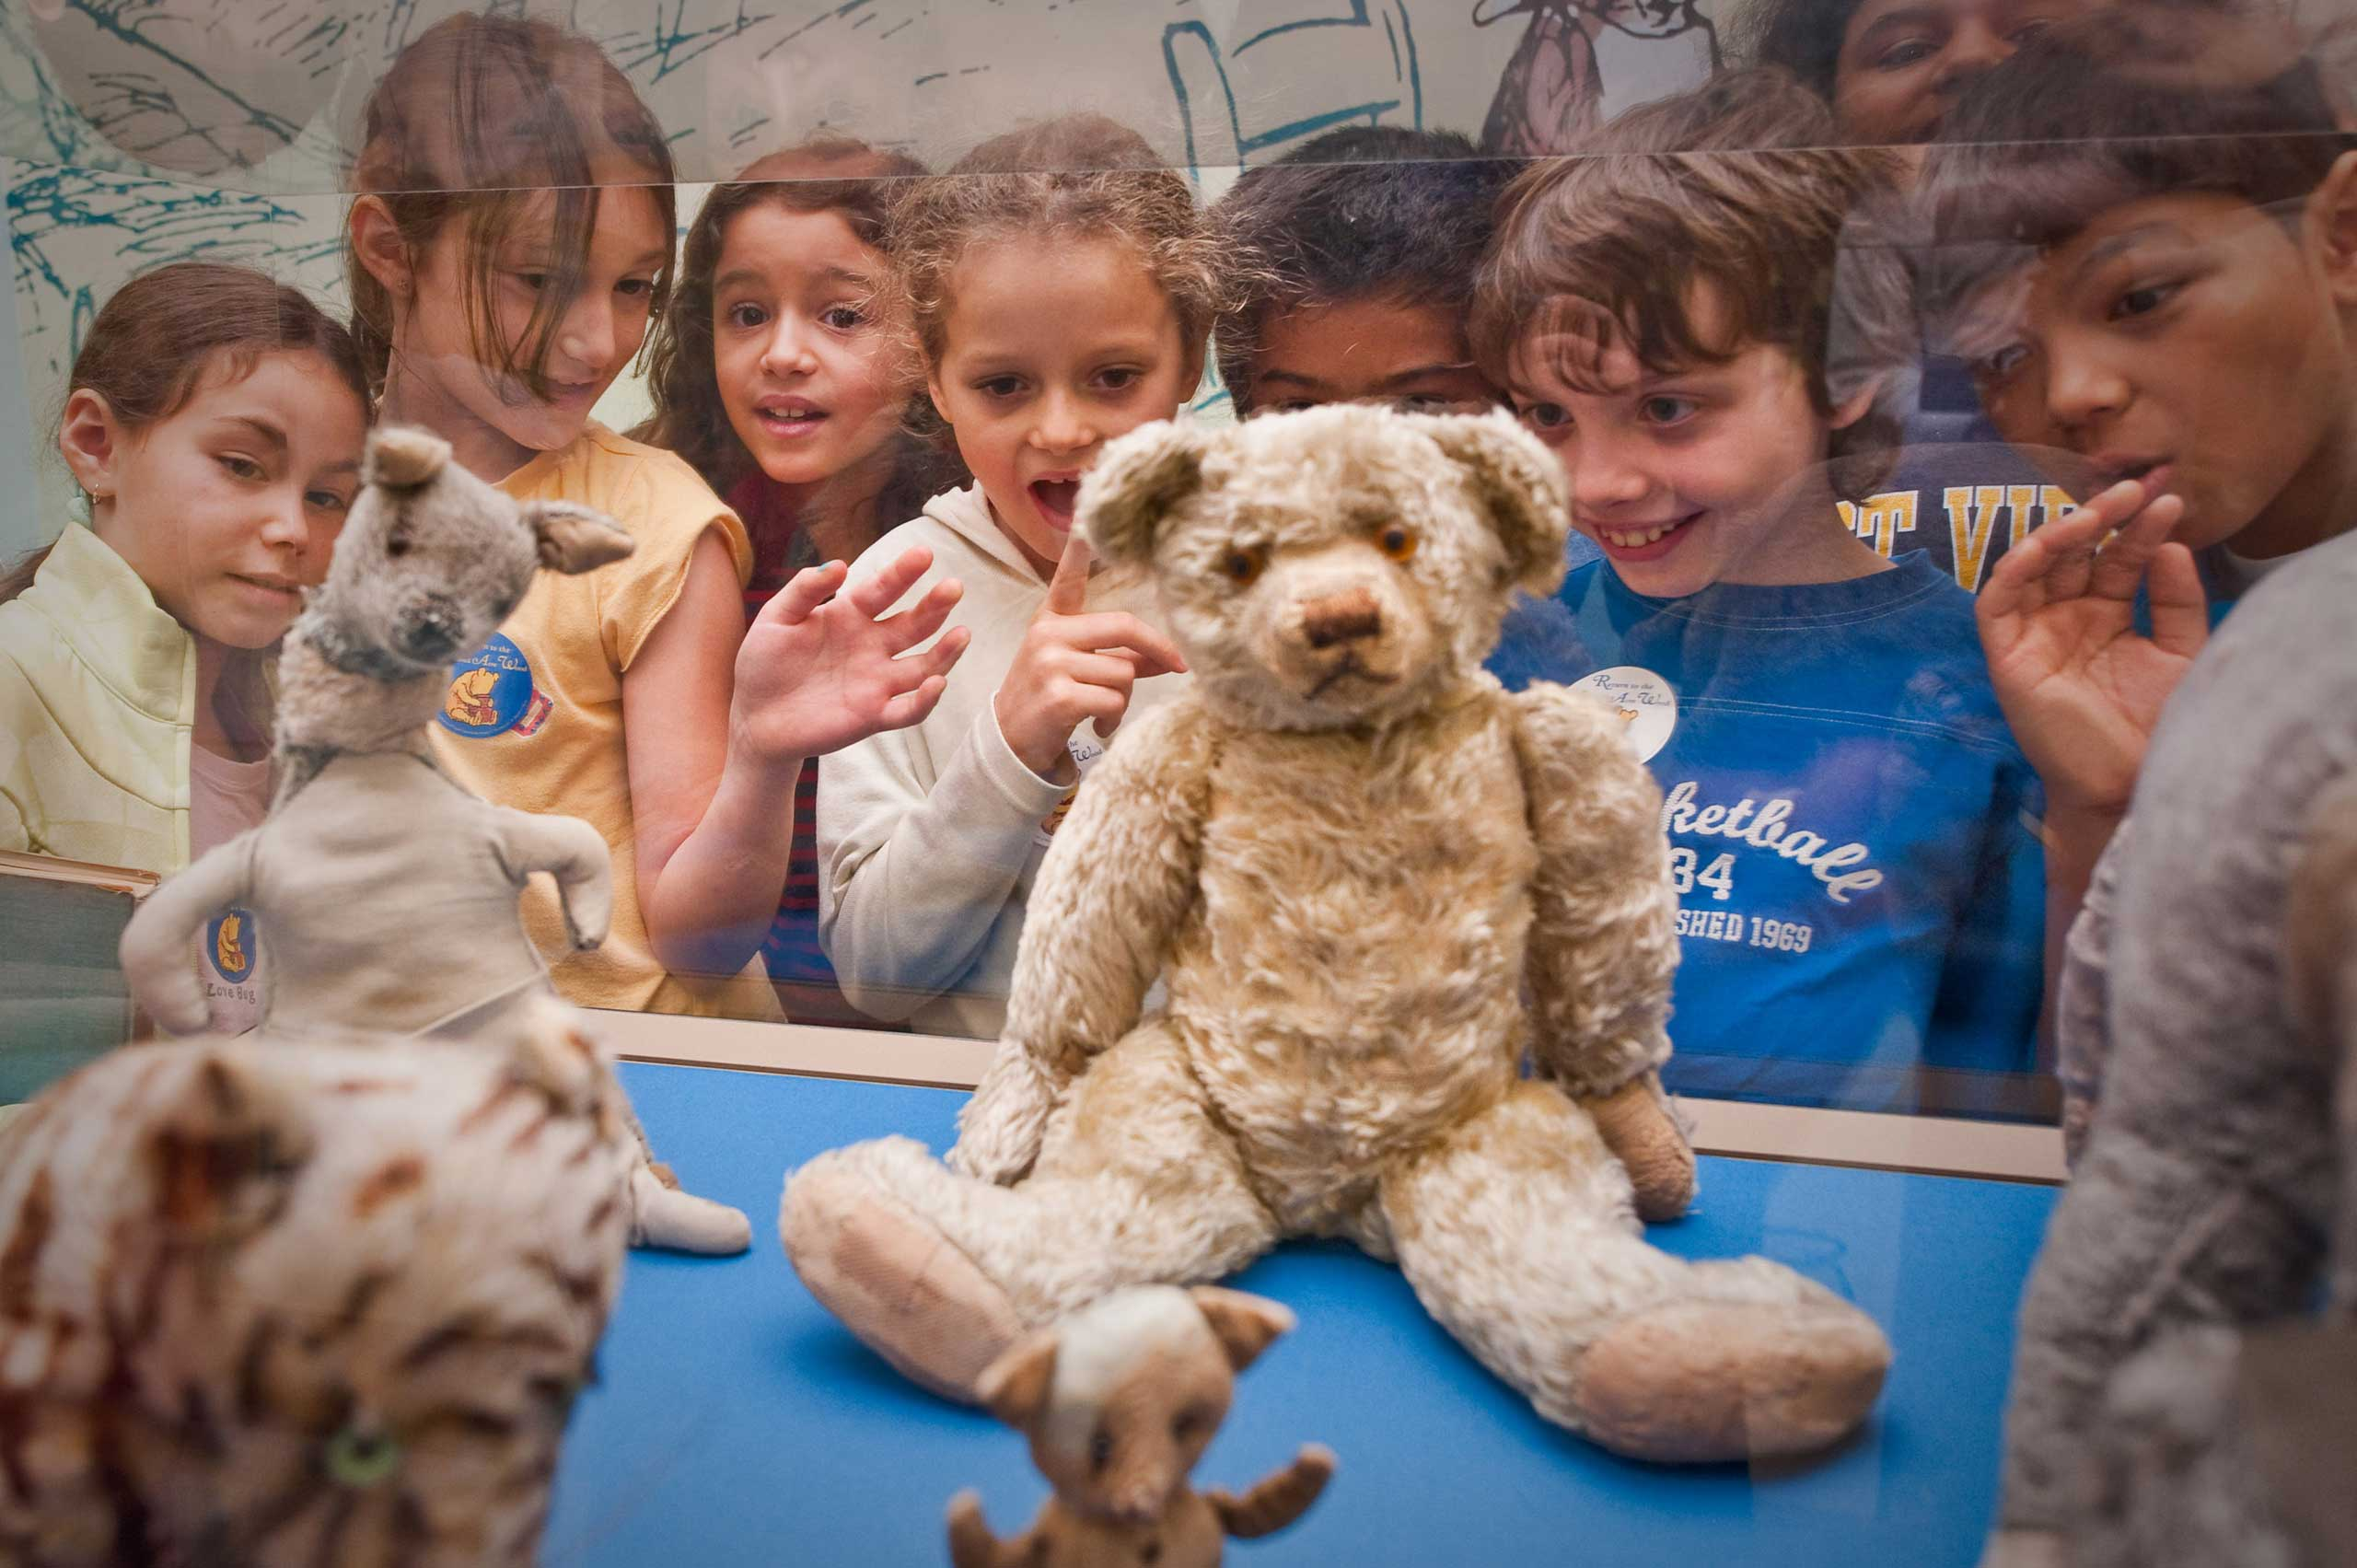 School children view the original Winnie the Pooh stuffed animals at the New York Public Library in 2009.